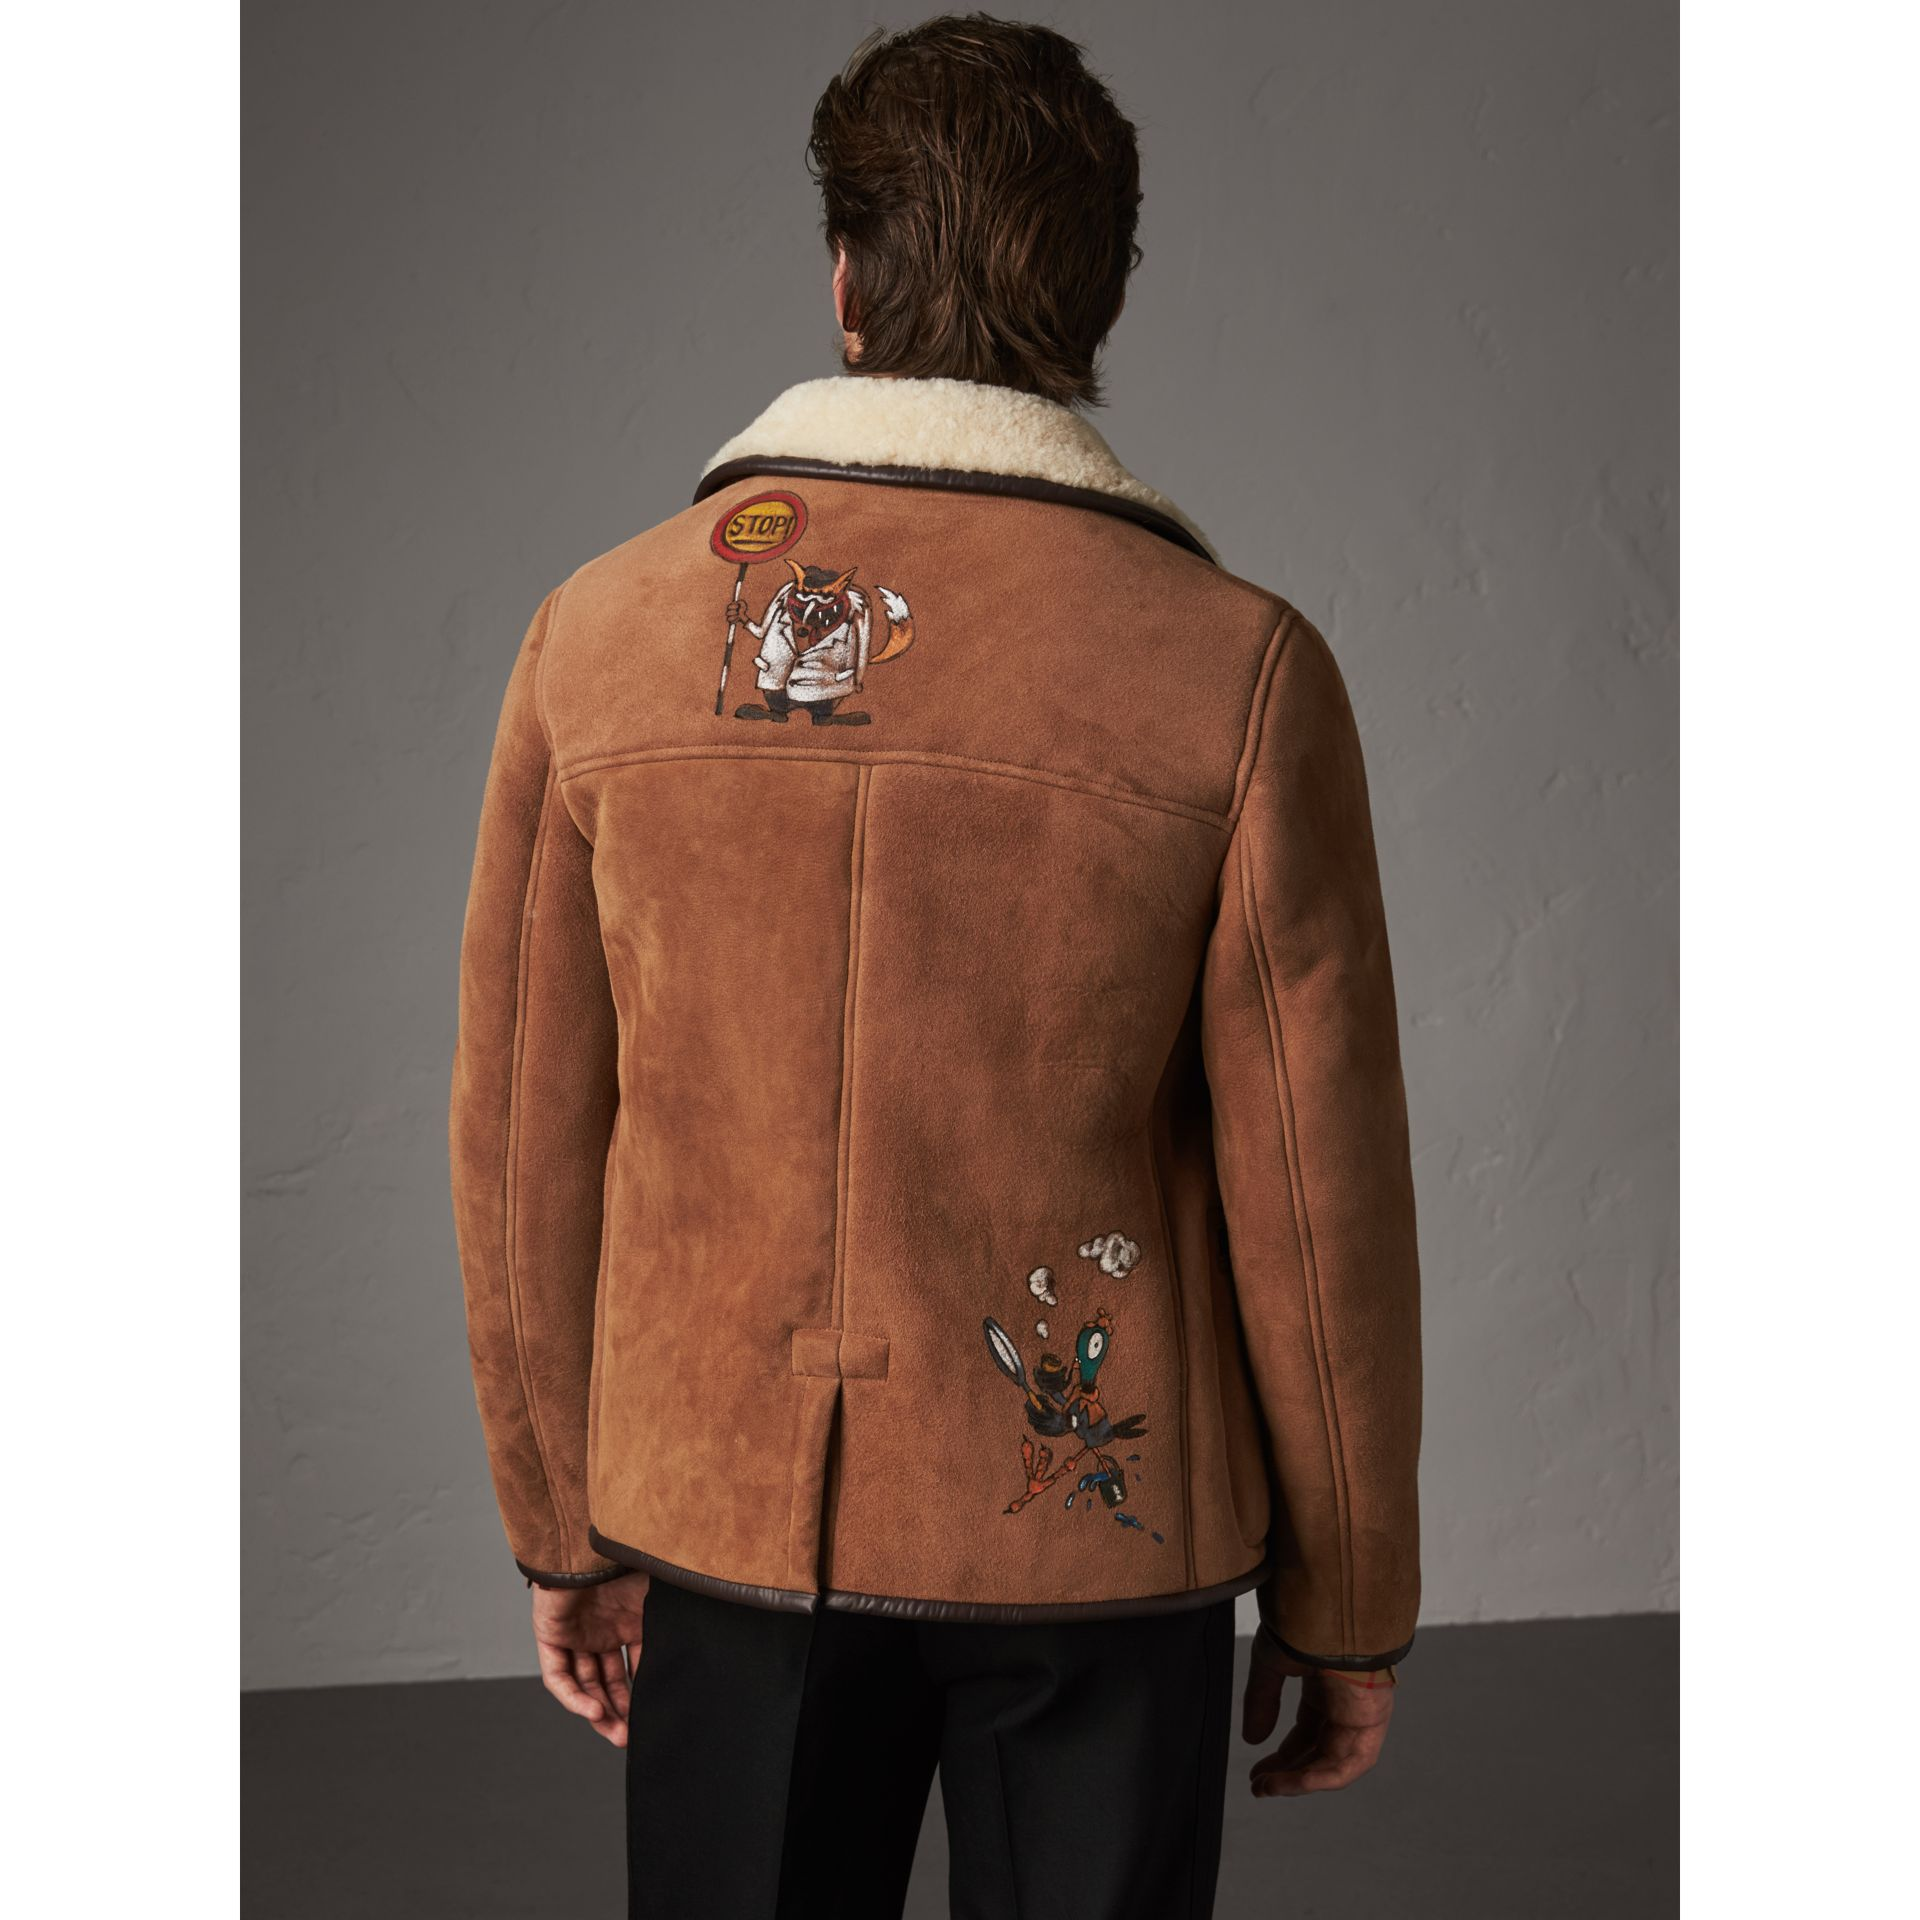 Sketch Print Shearling Jacket in Biscuit - Men | Burberry United States - gallery image 2